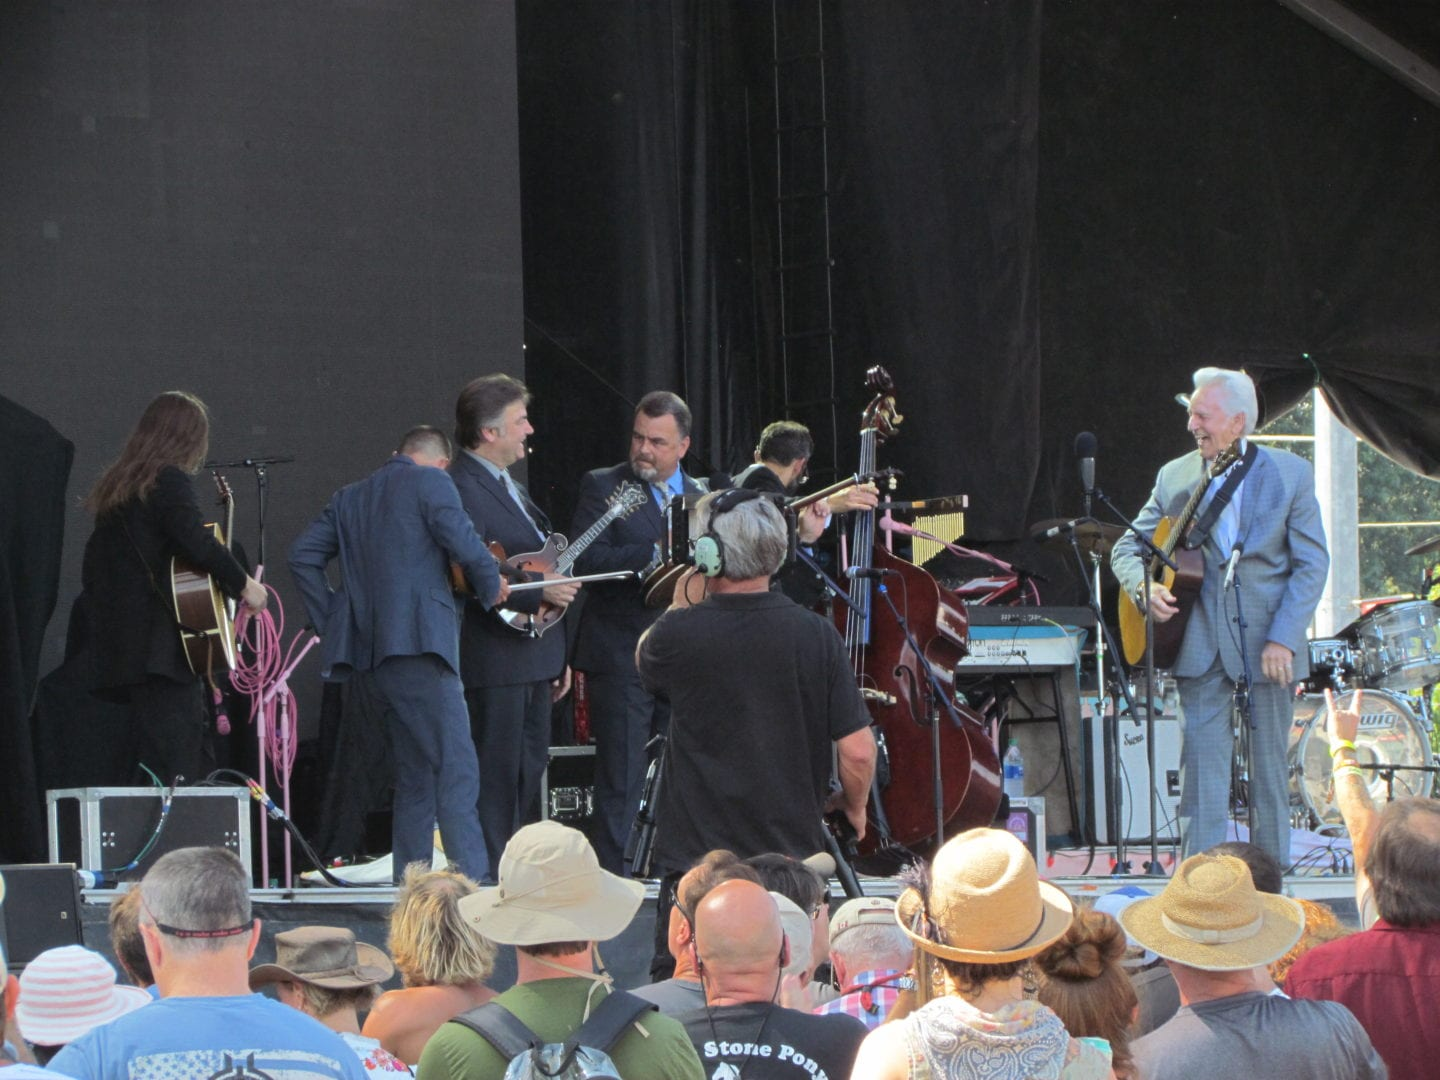 An image of Del McCoury and the band